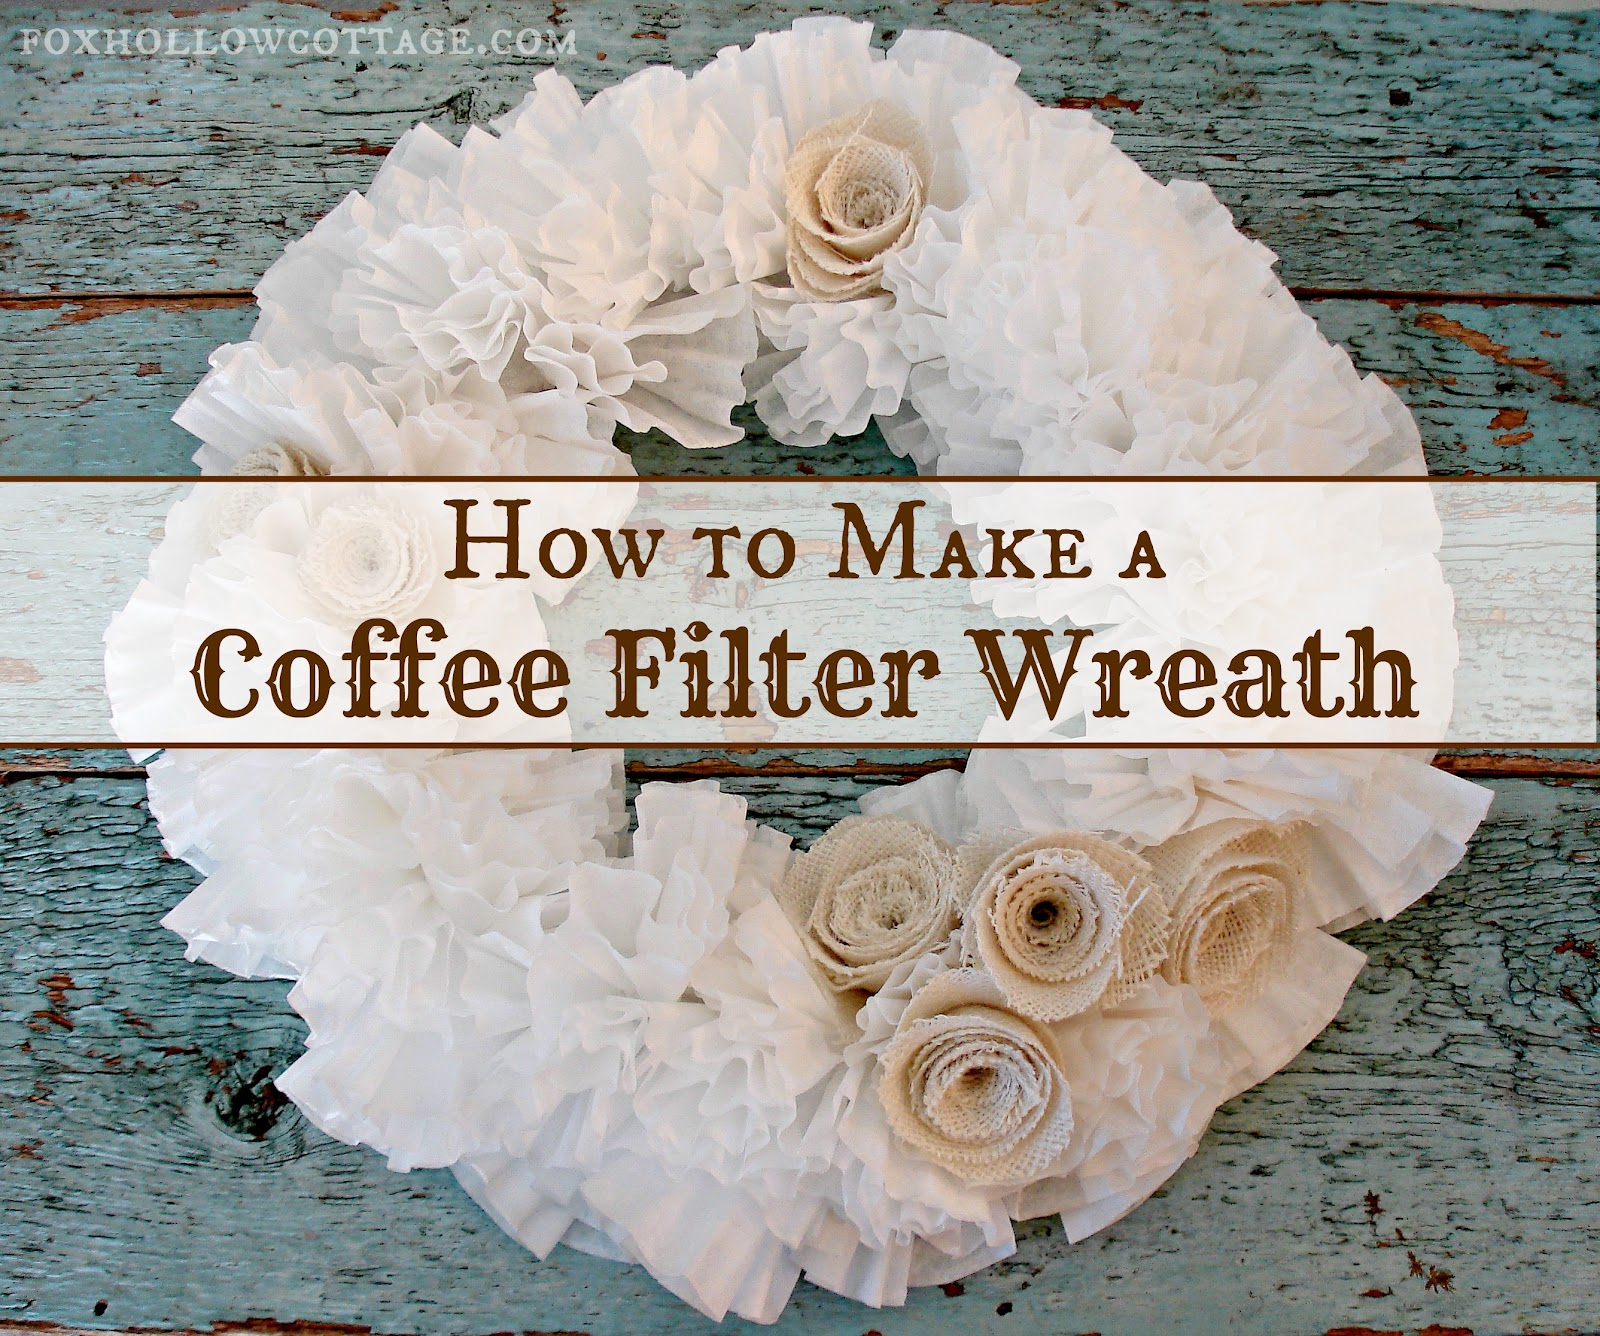 How To Make A Coffee Filter Wreath With Burlap Roses